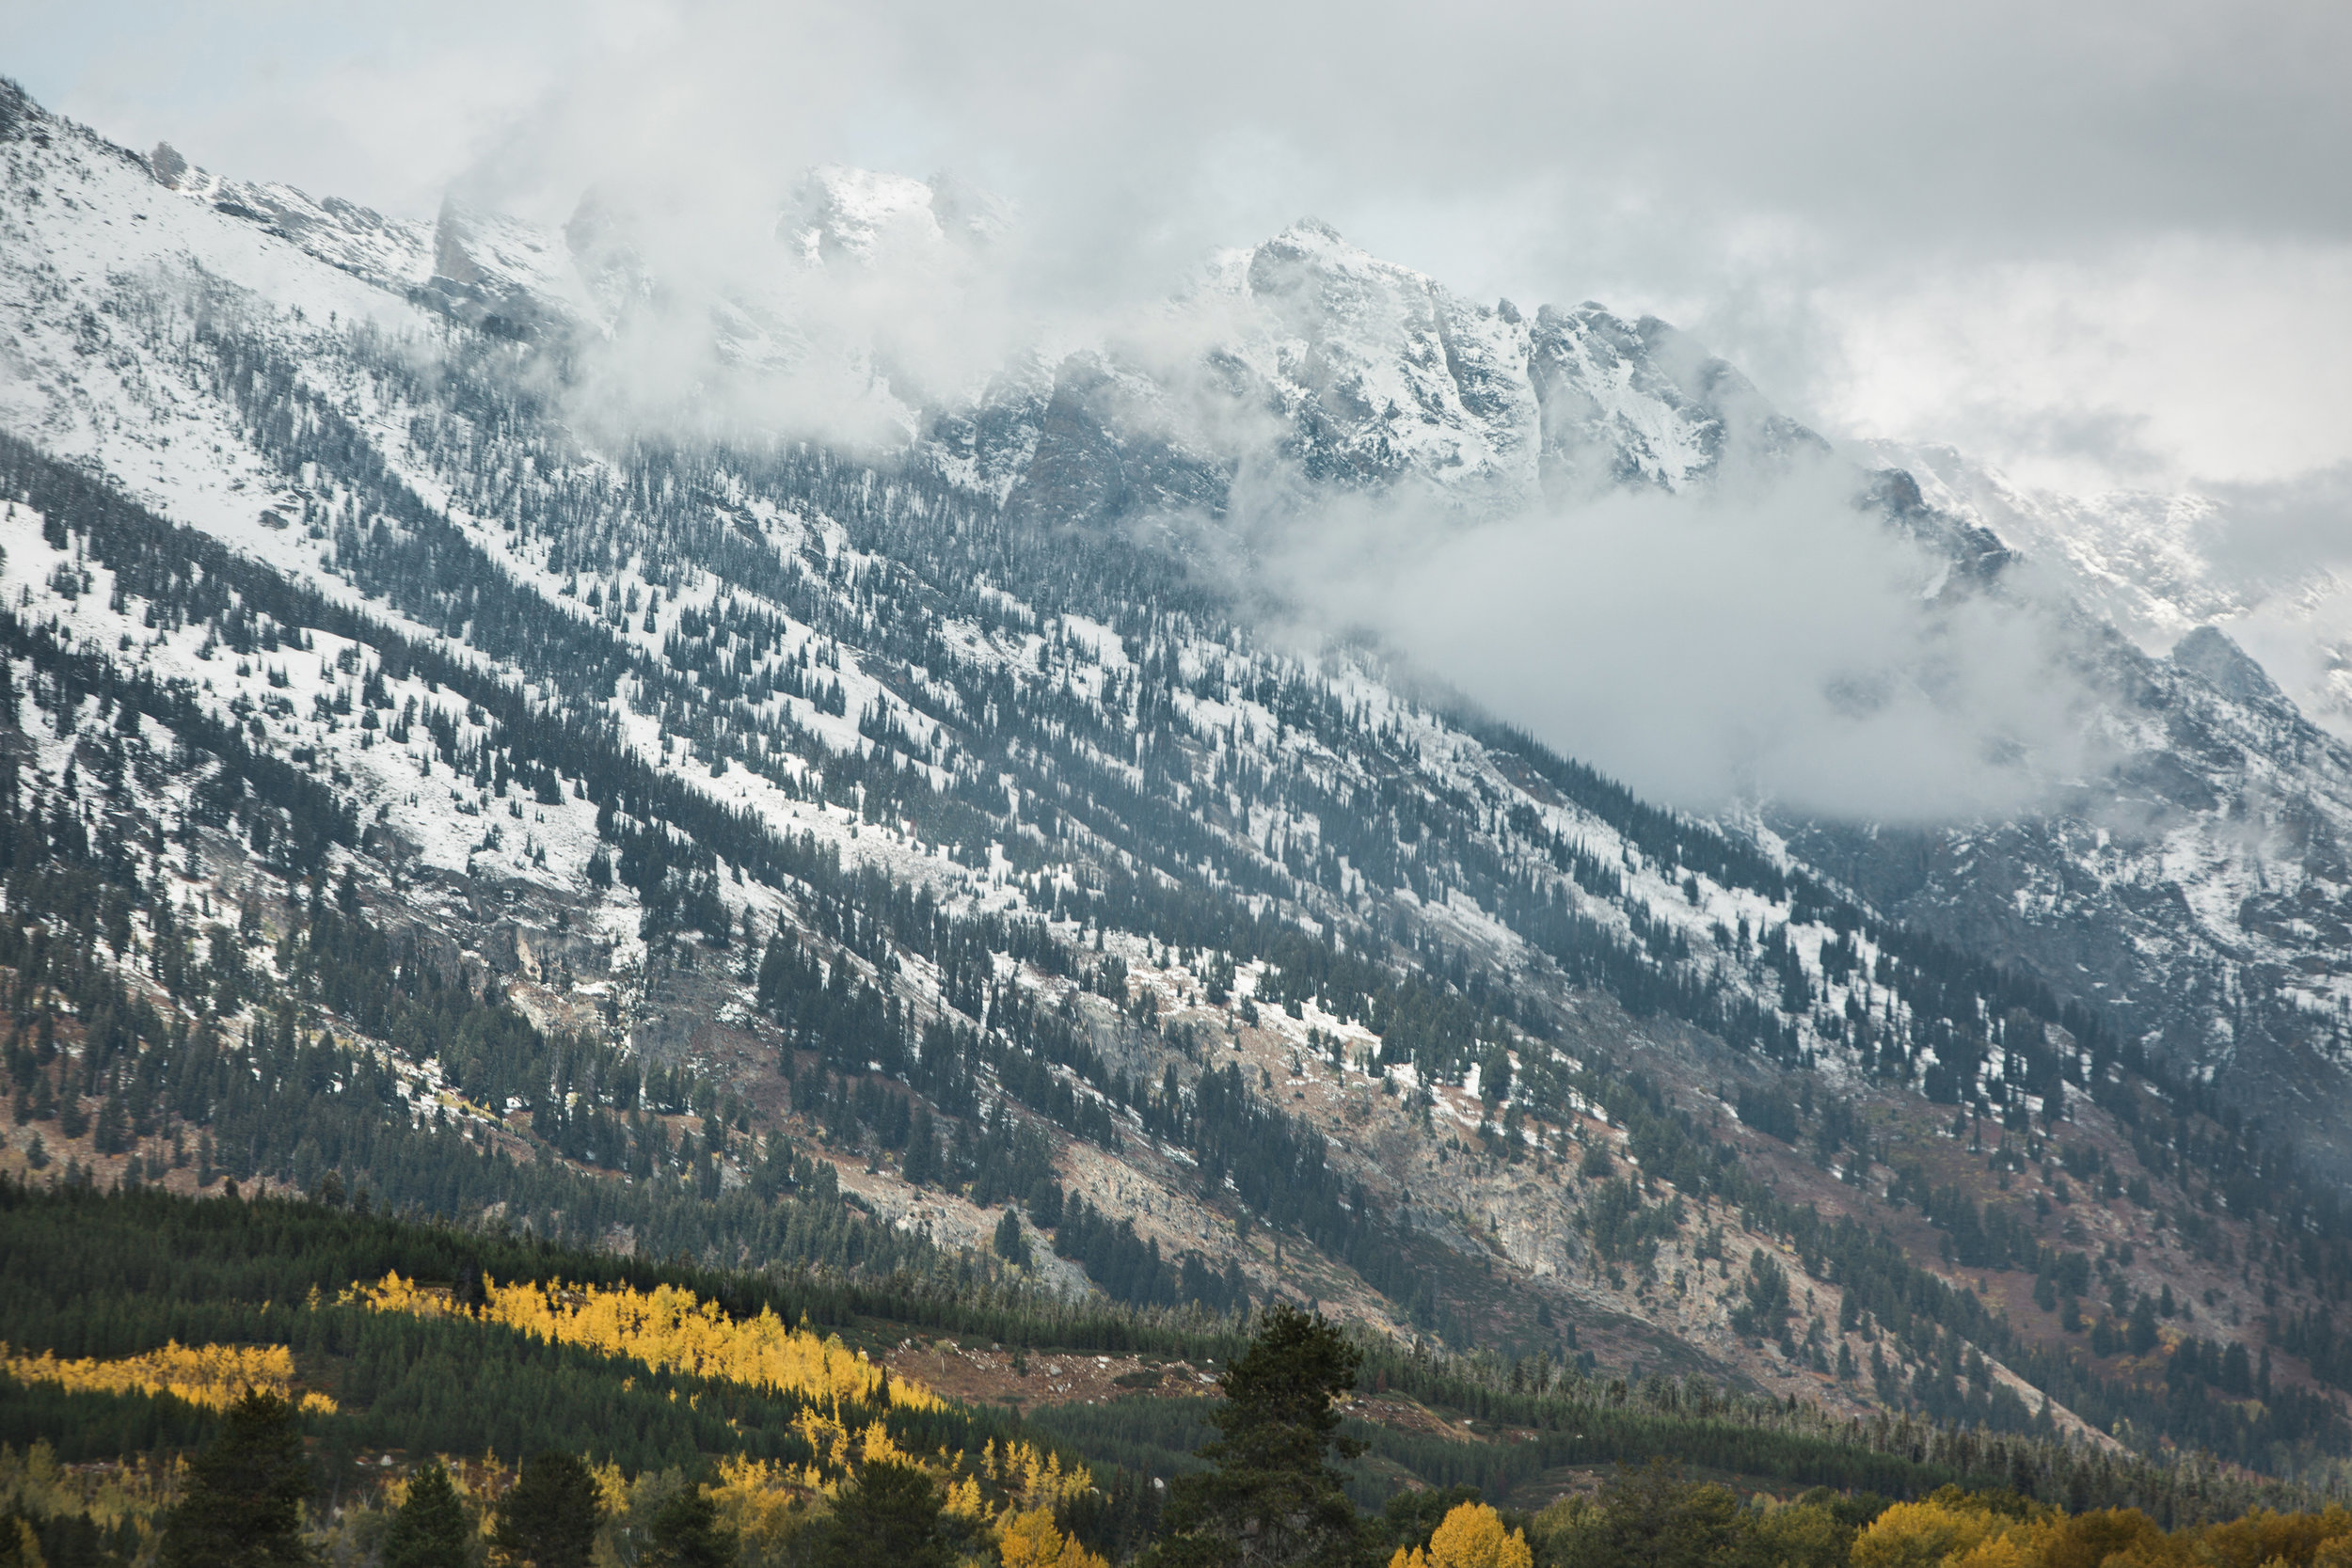 CindyGiovagnoli_Grand_Teton_National_Park_mountains_Bison_Autumn_Wyoming_Mormon_Row_aspens_fall_outdoor_photographer-007.jpg